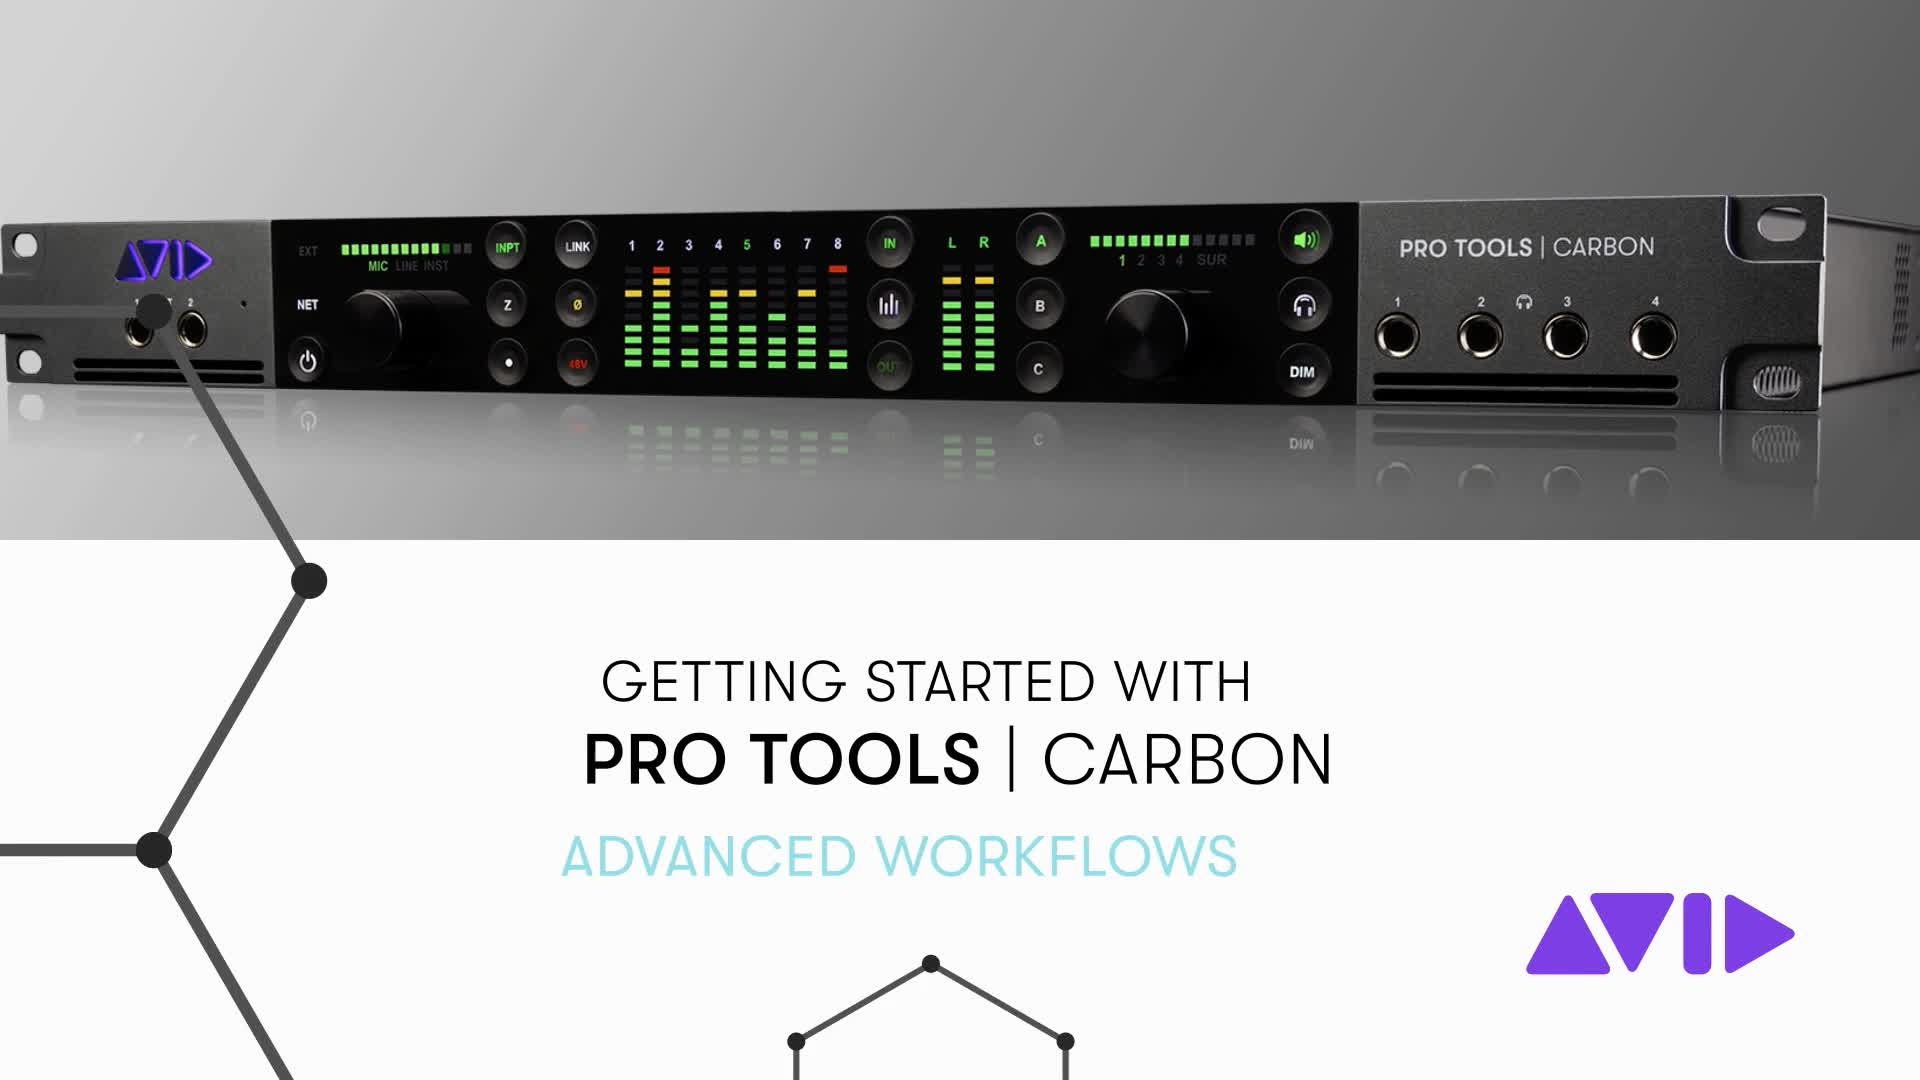 09 Pro Tools Carbon Getting Started - Advanced Workflows